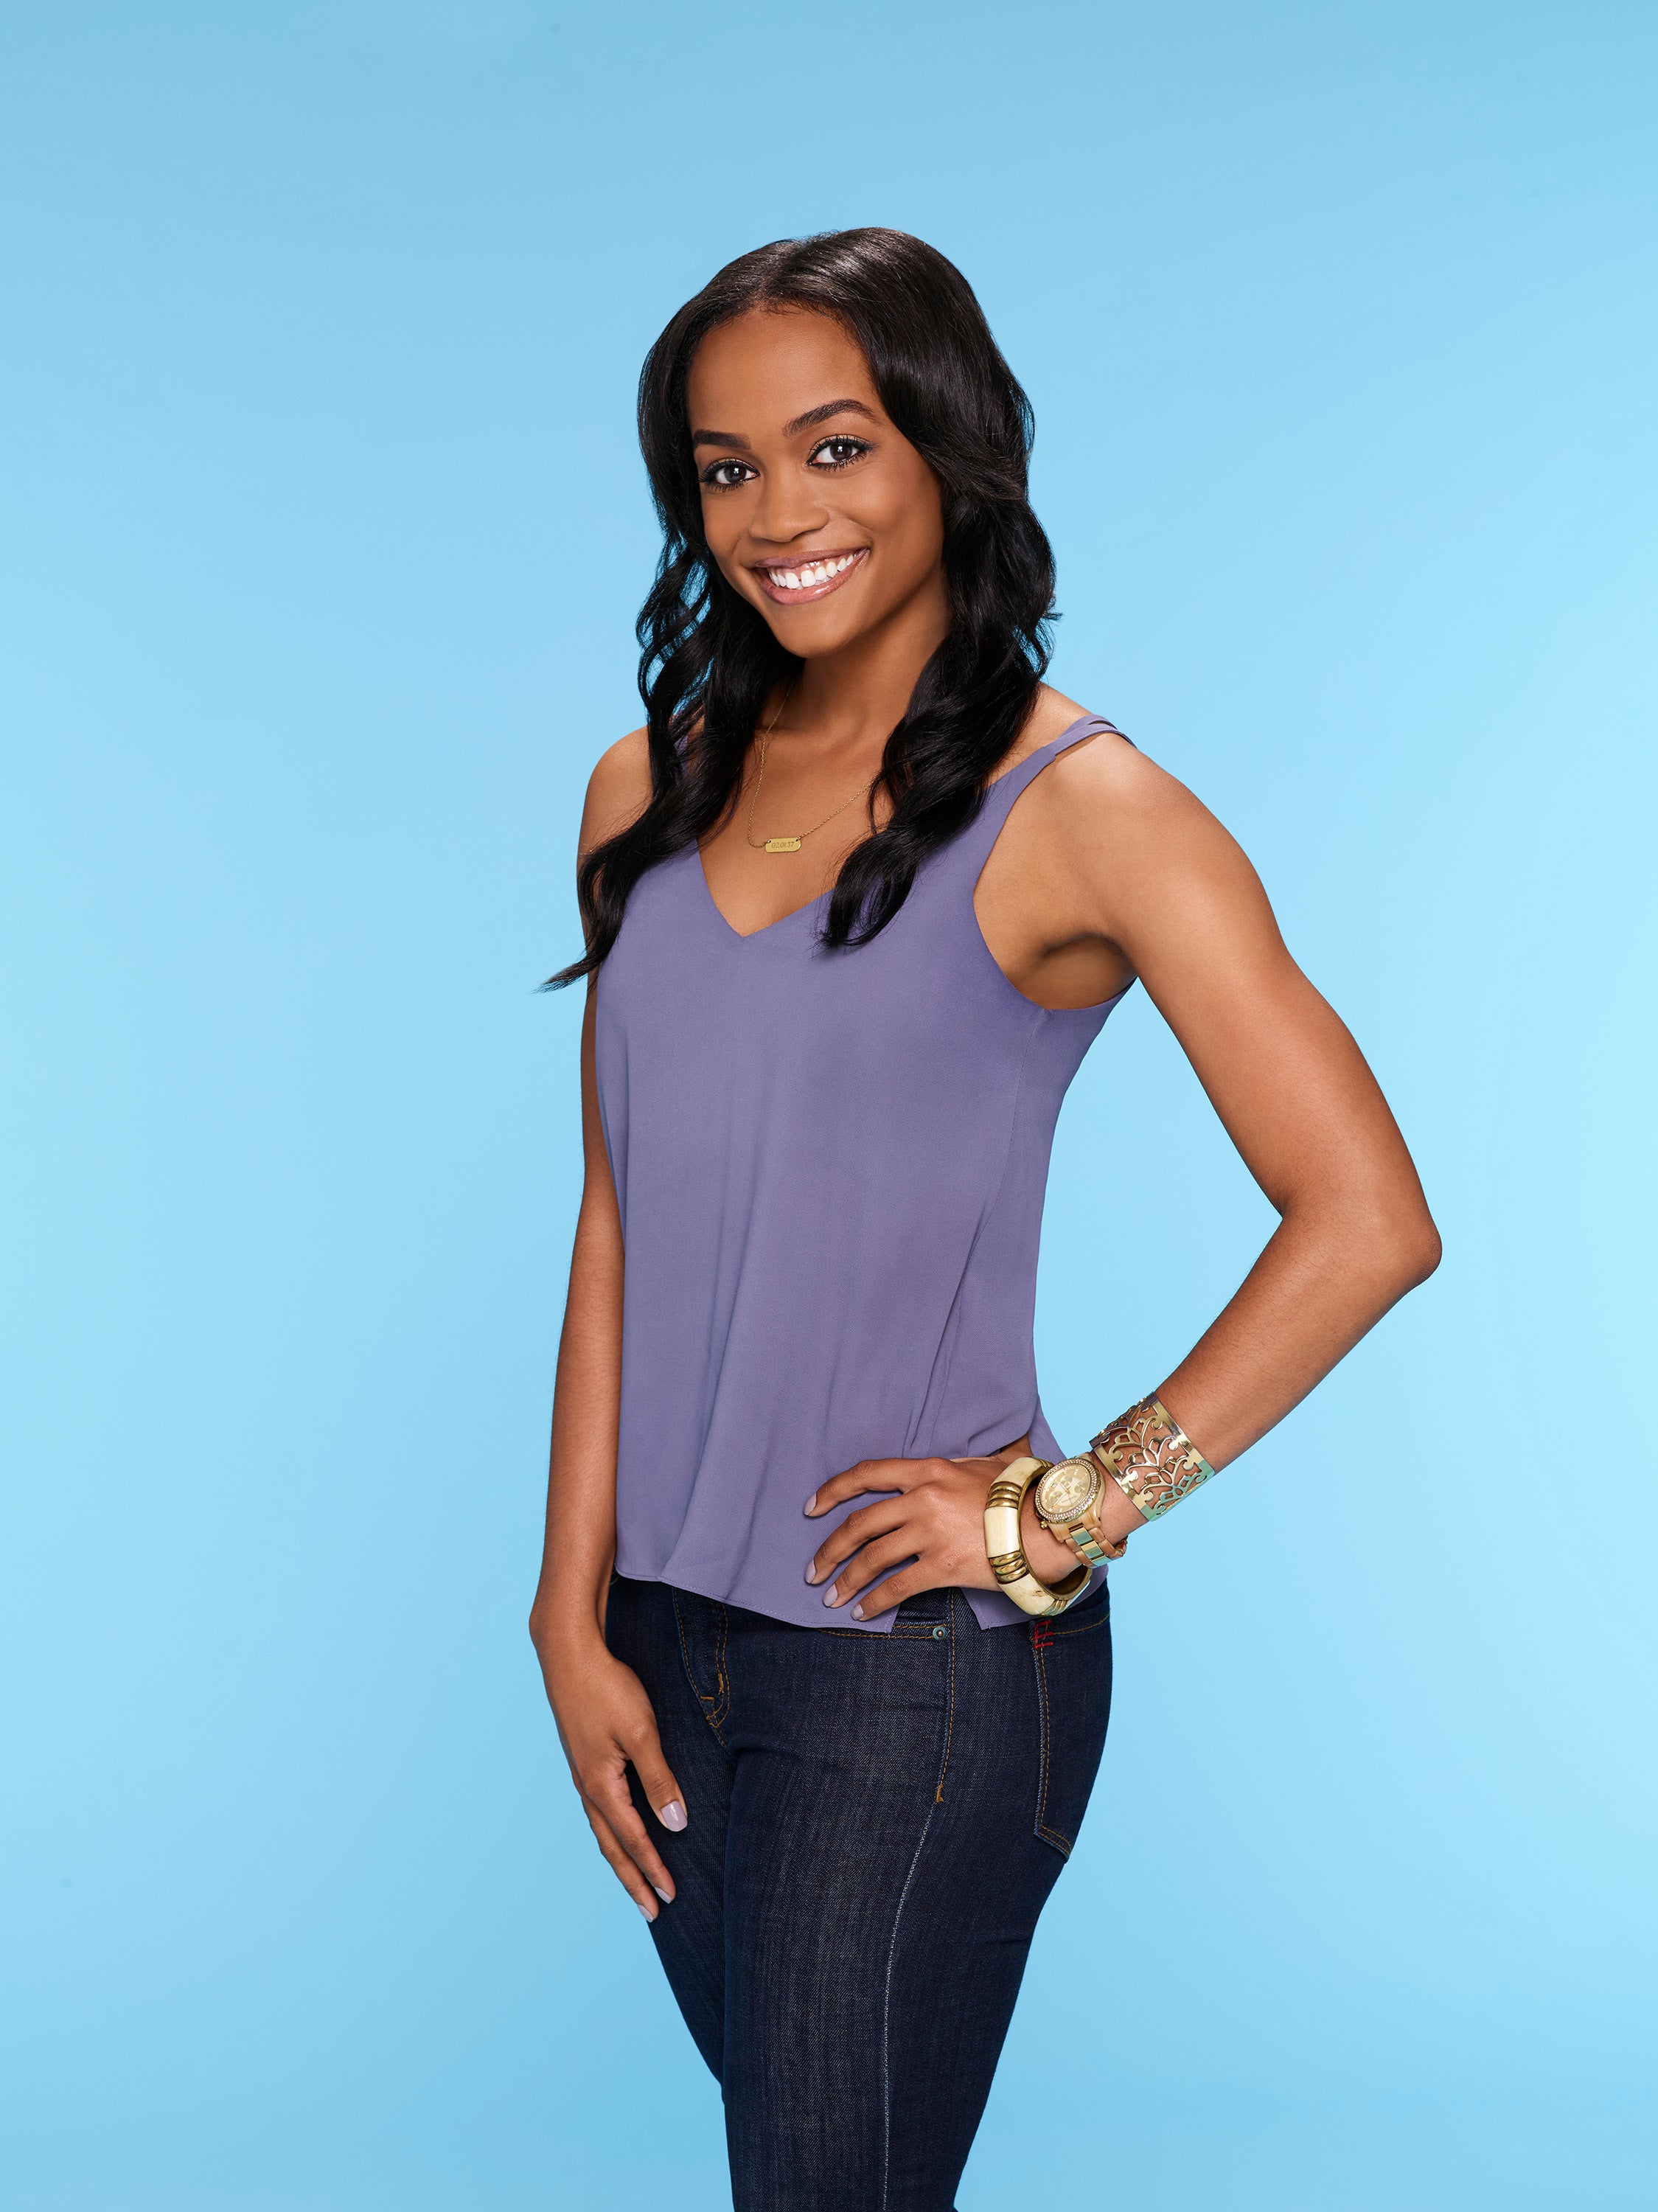 6 Things to Know About The Black Woman On 'The Bachelor' Who Is Stealing Viewers' Hearts and Making History